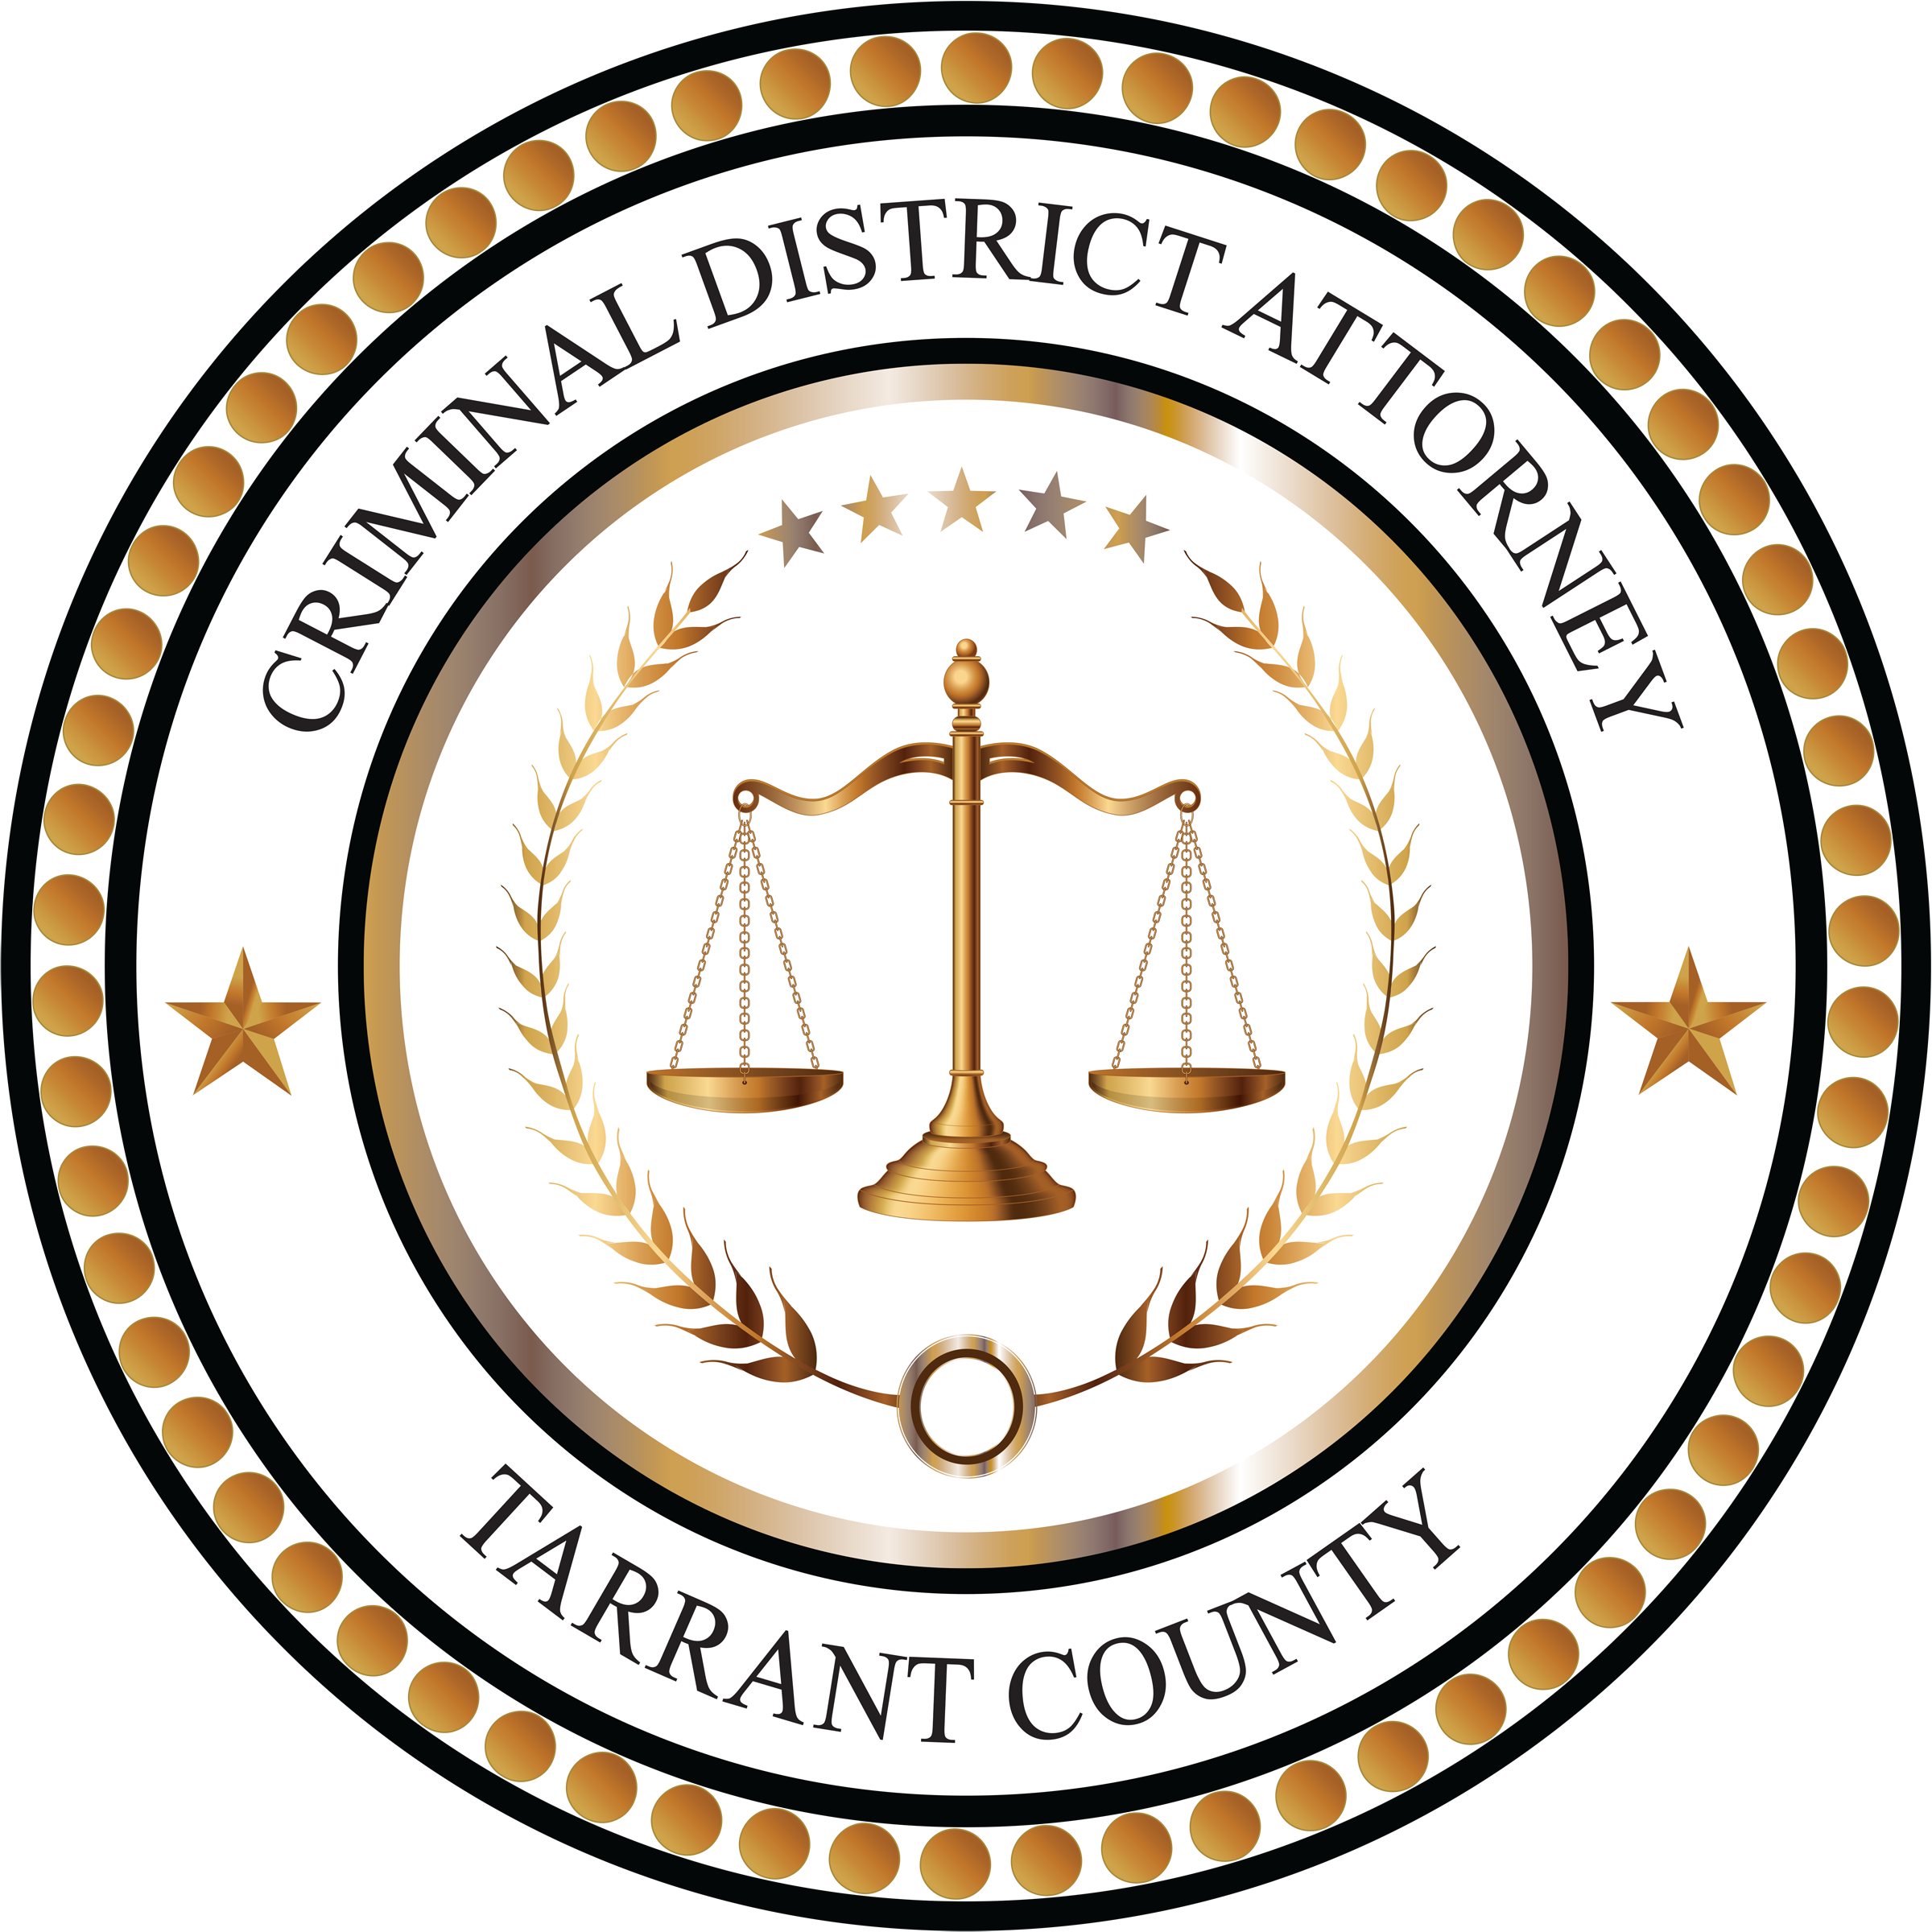 Tarrant County Criminal District Attorney